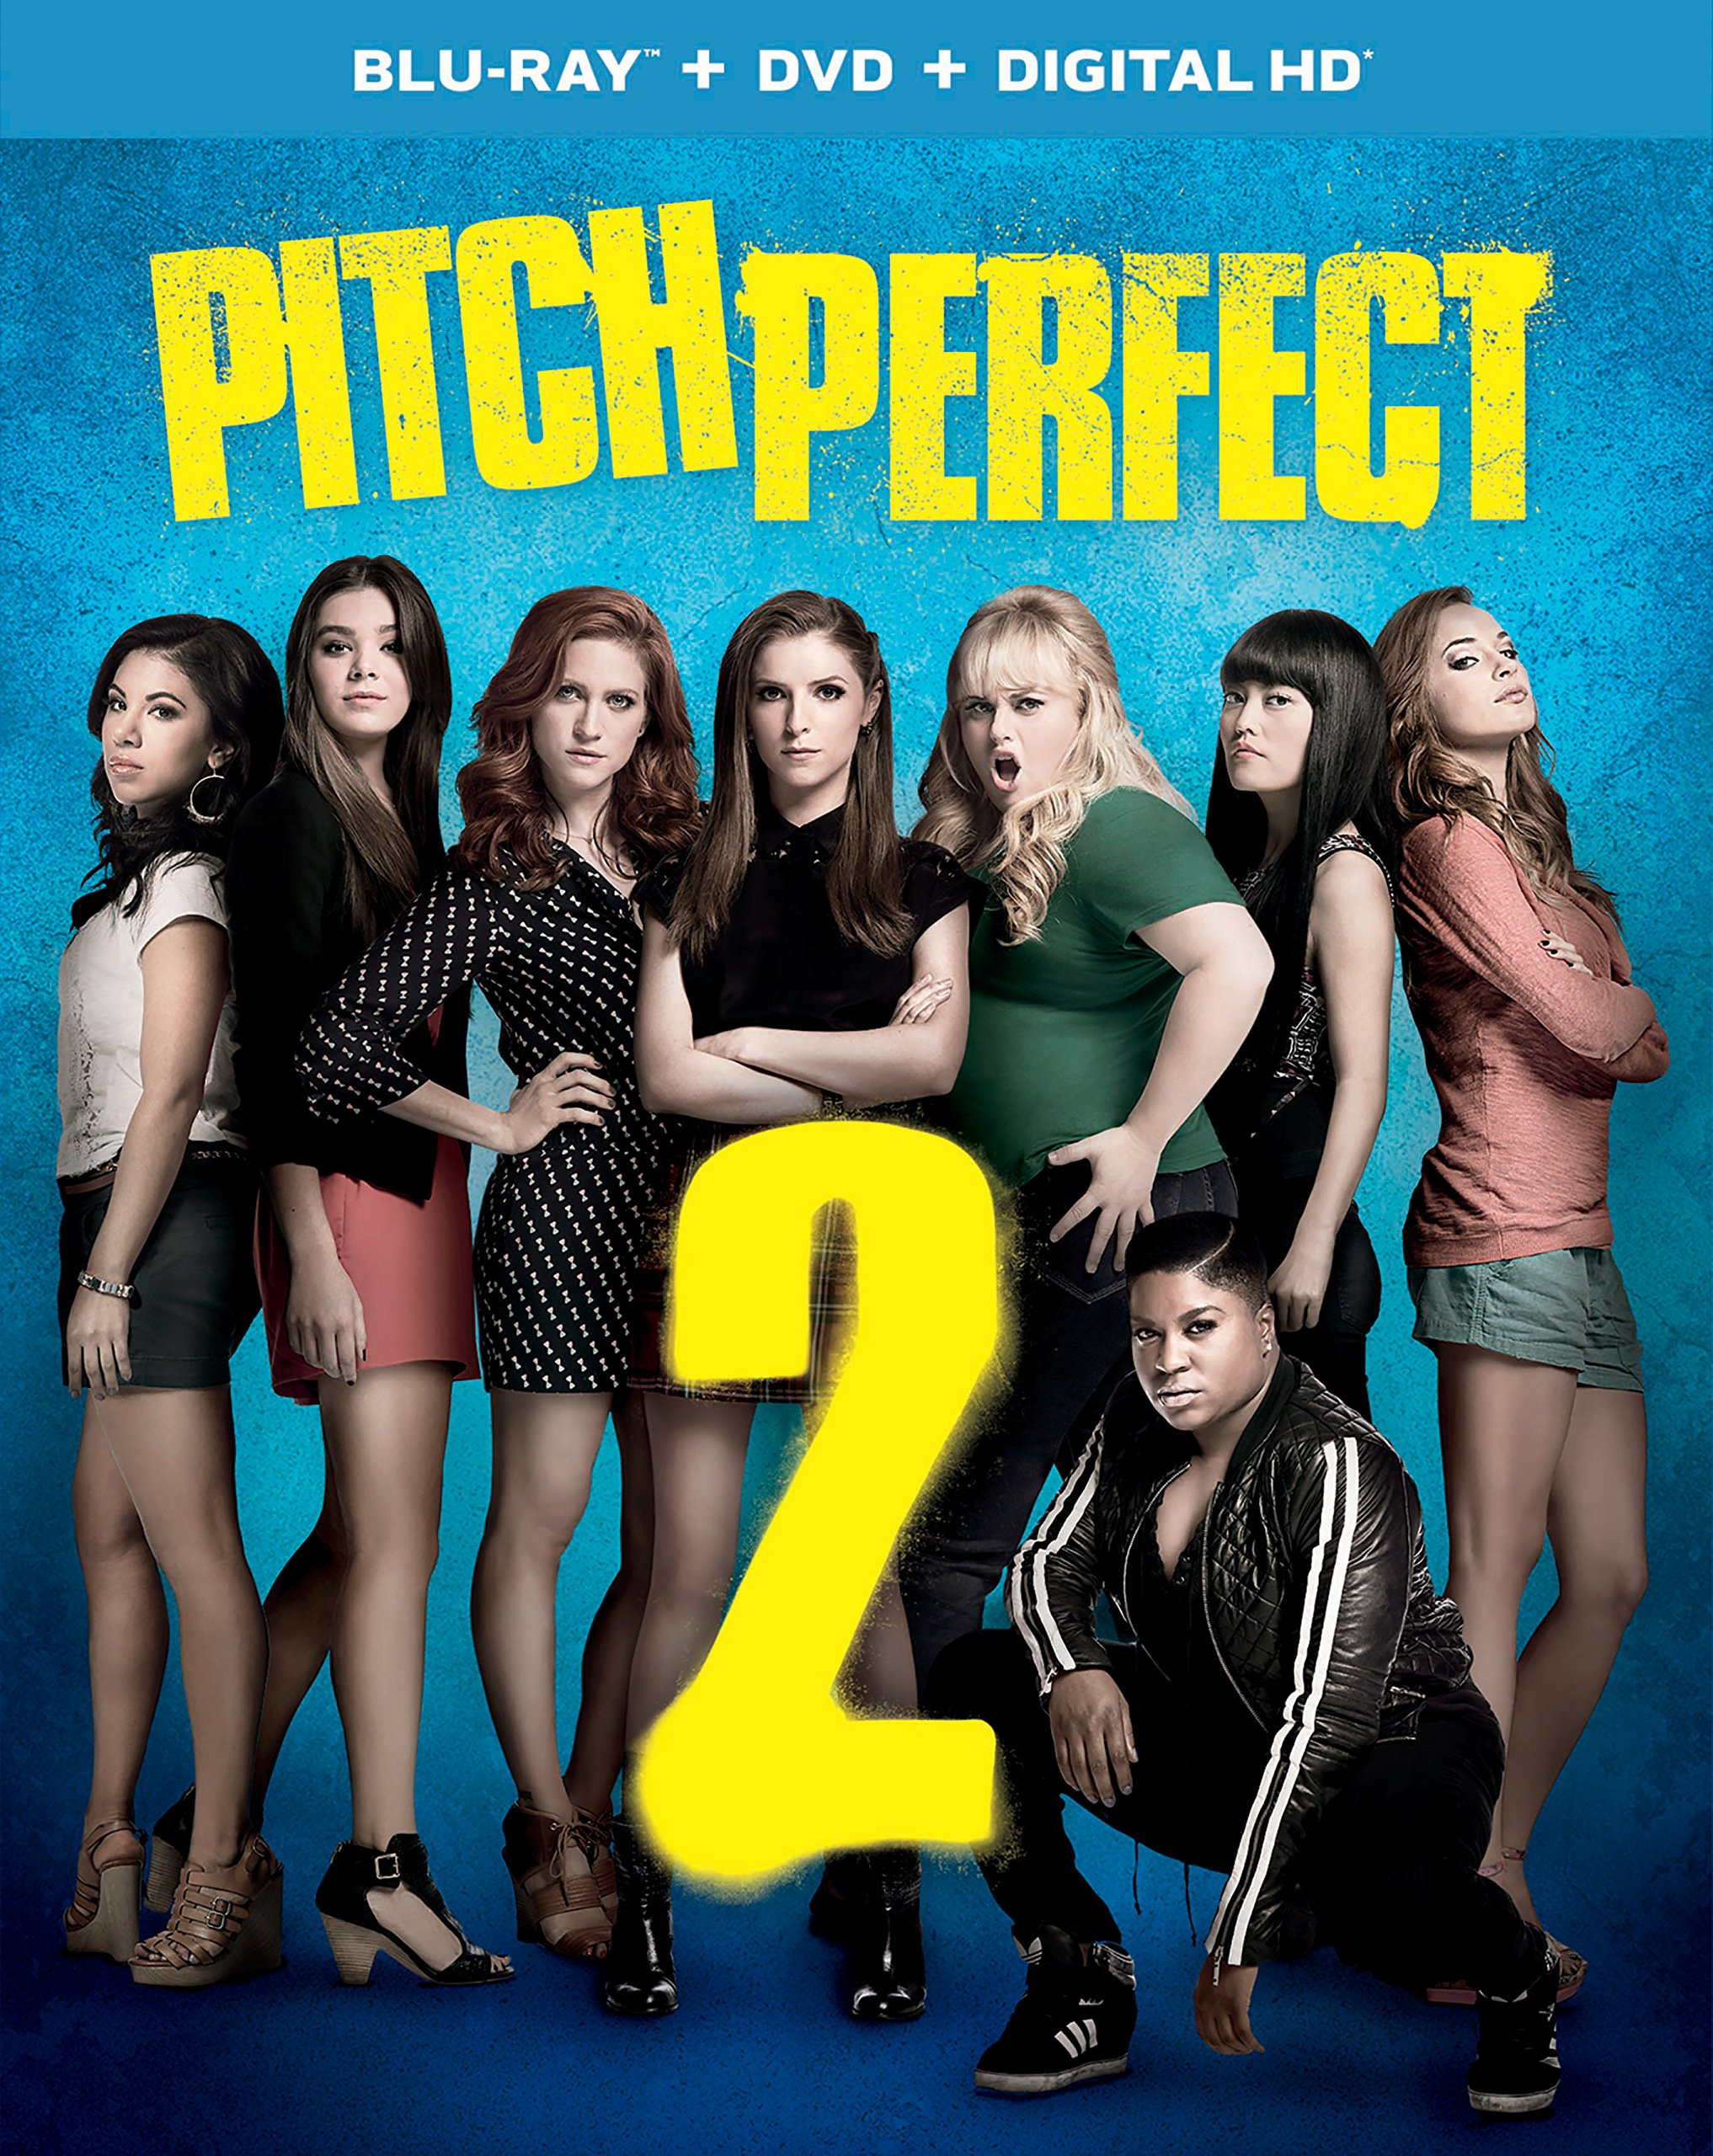 Nights And Weekends - Pitch Perfect 2 Review